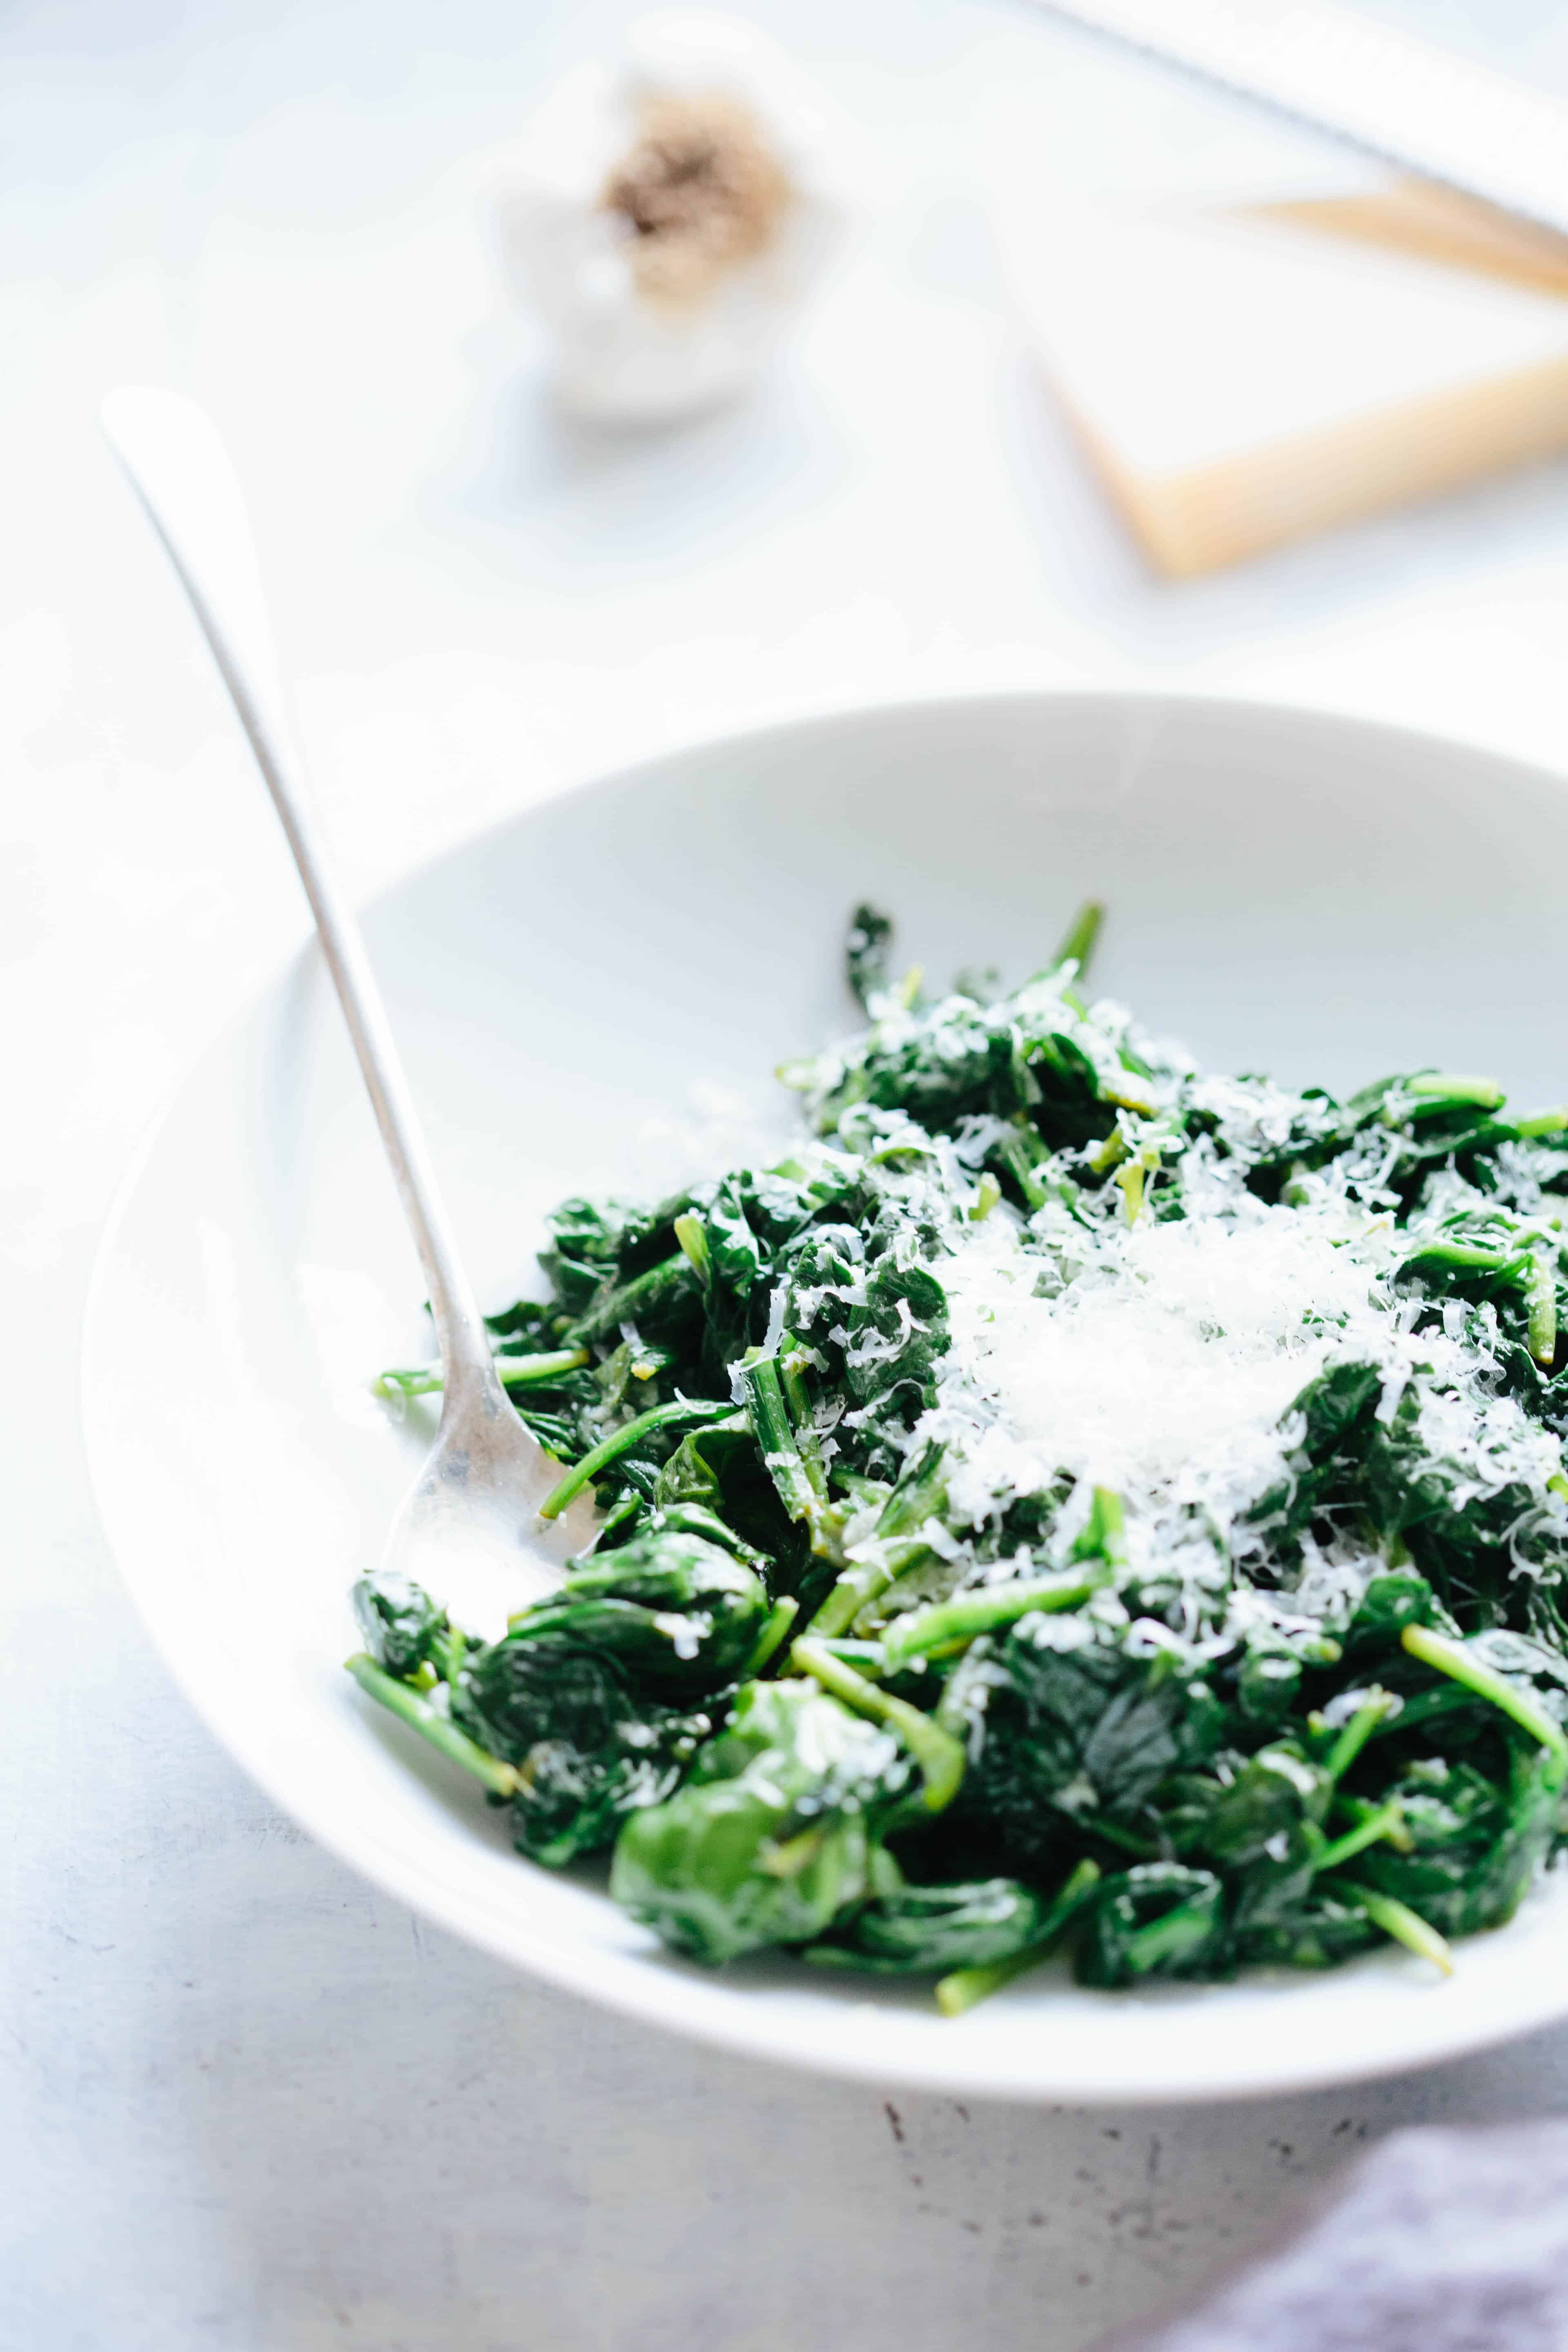 This Spinach with Butter + Parmesan is a simple, yet delicious recipe takes 5 minutes to make and uses only 4 ingredients! #easy #spinach #vegetable #side #recipe #quick #Italian #cheese | ColeyCooks.com